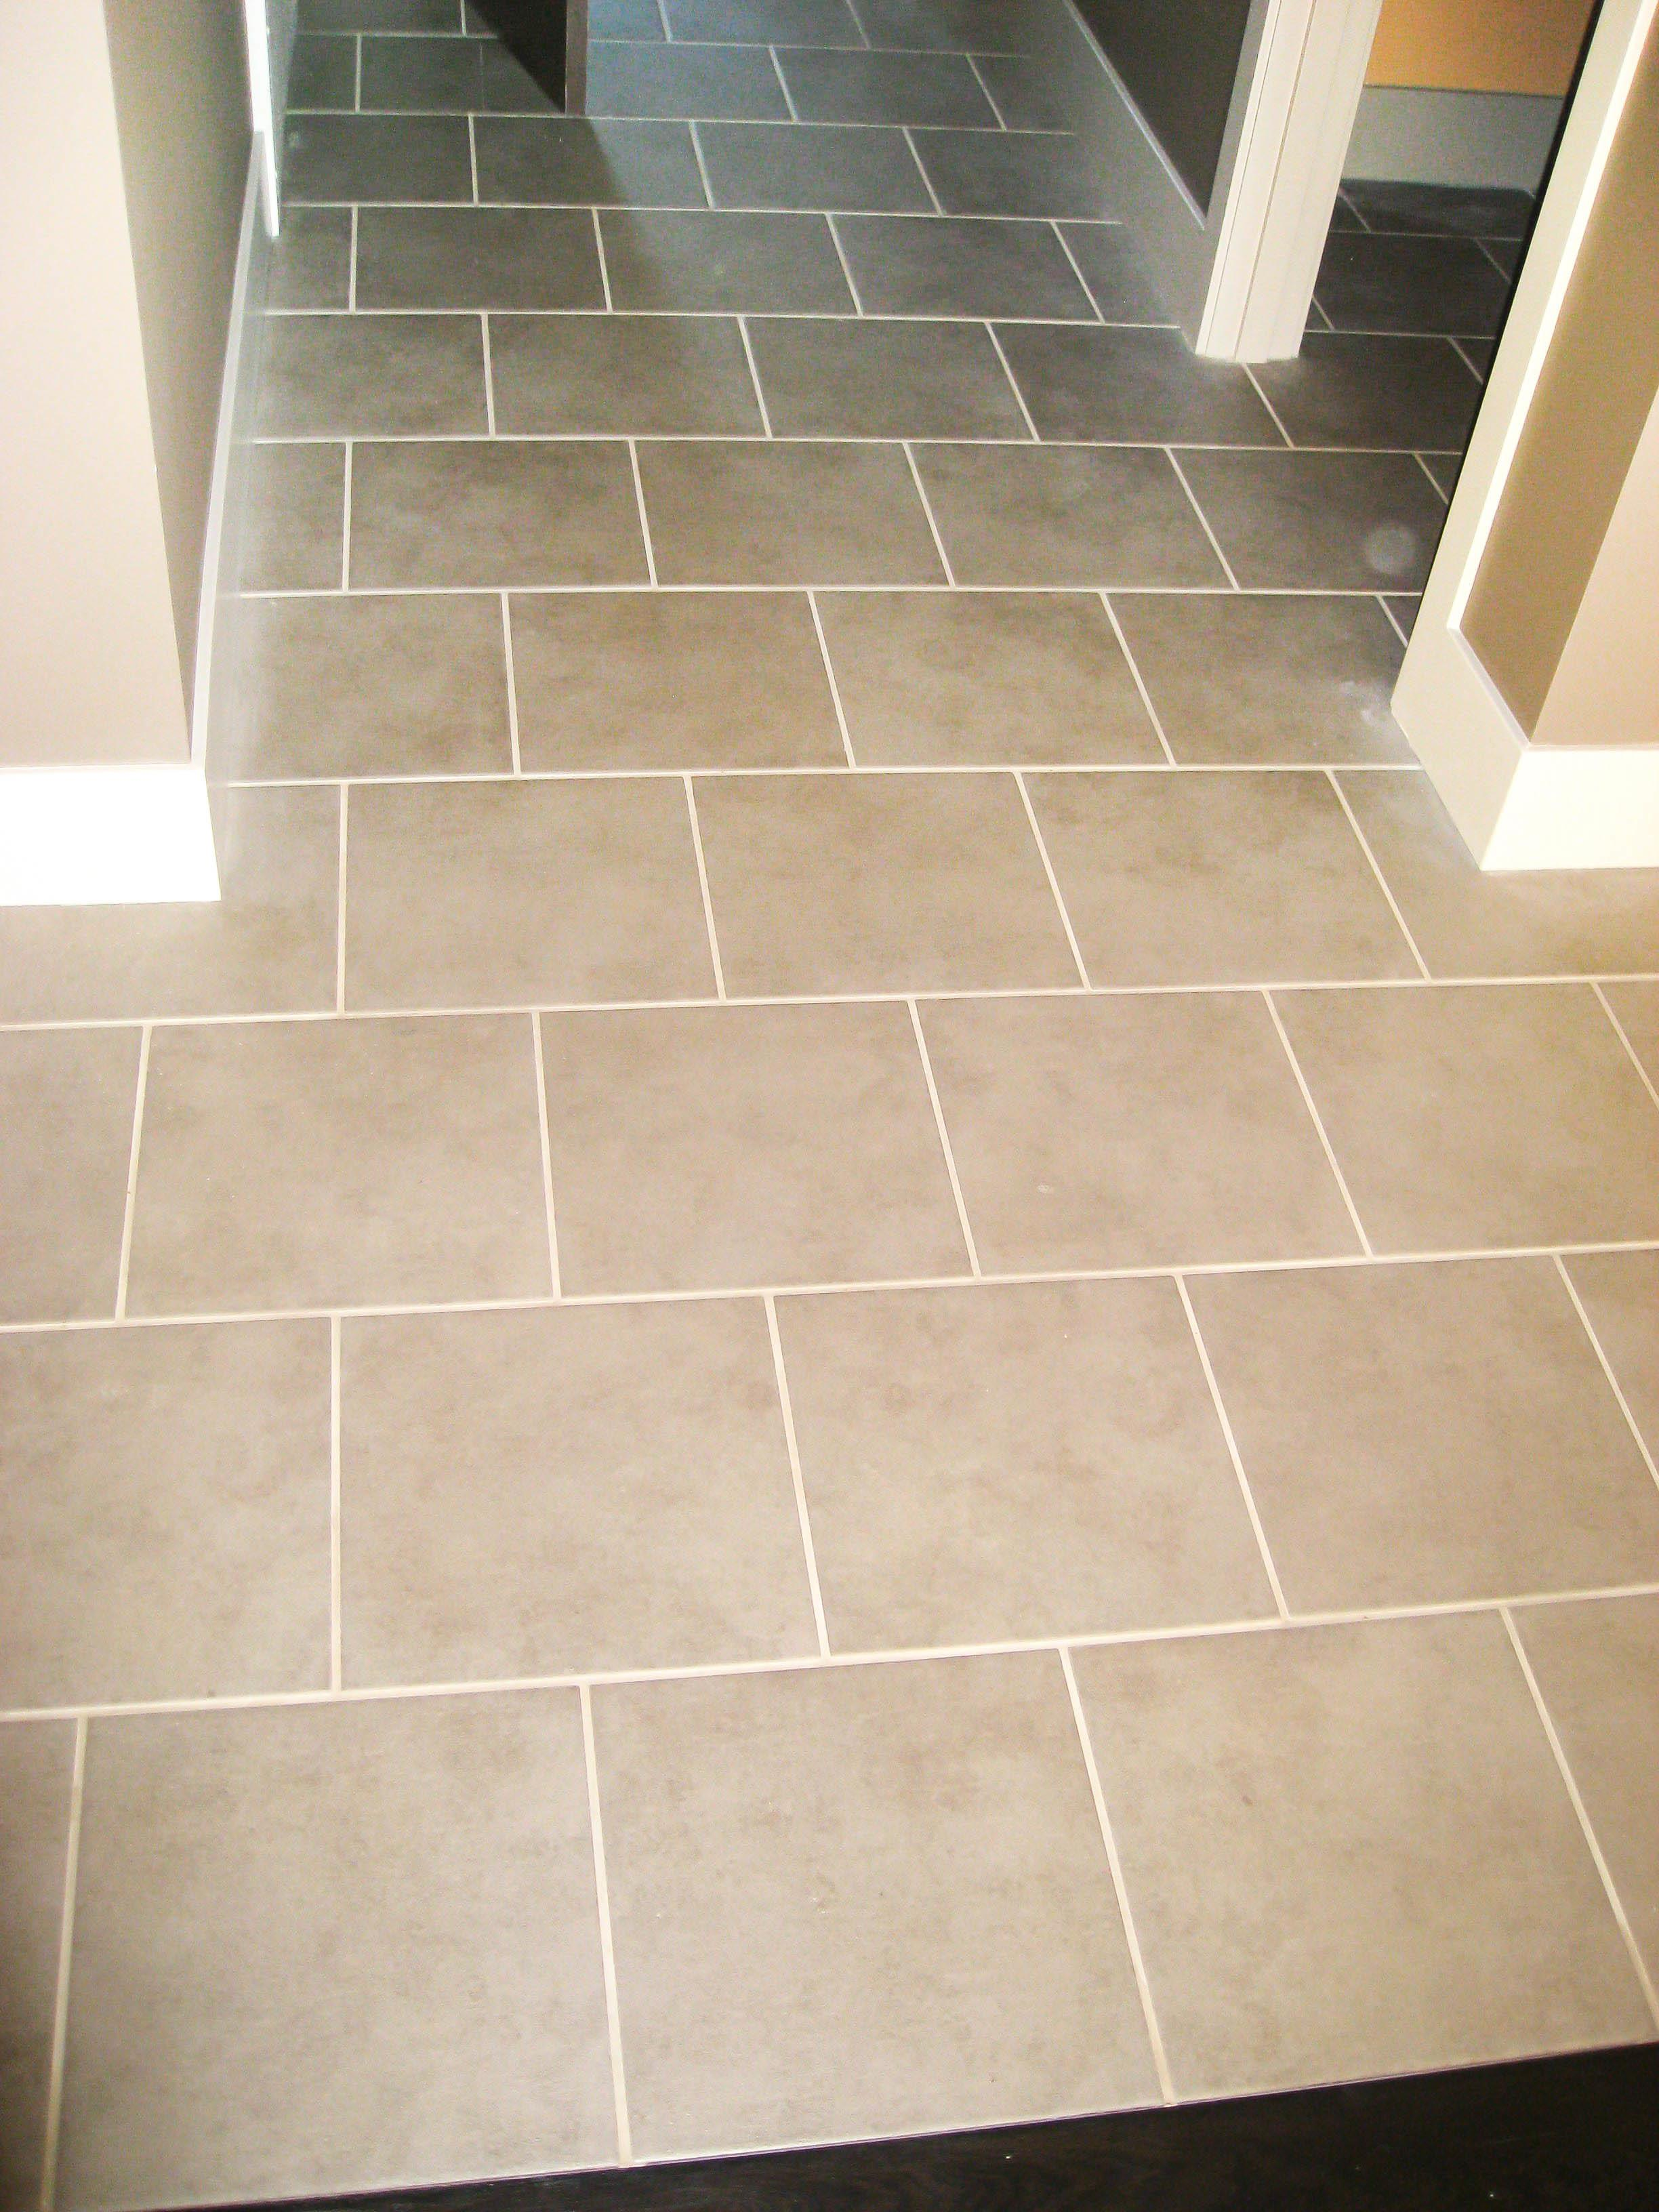 Clean Grout Ceramic Floor Tiles Home Fatare